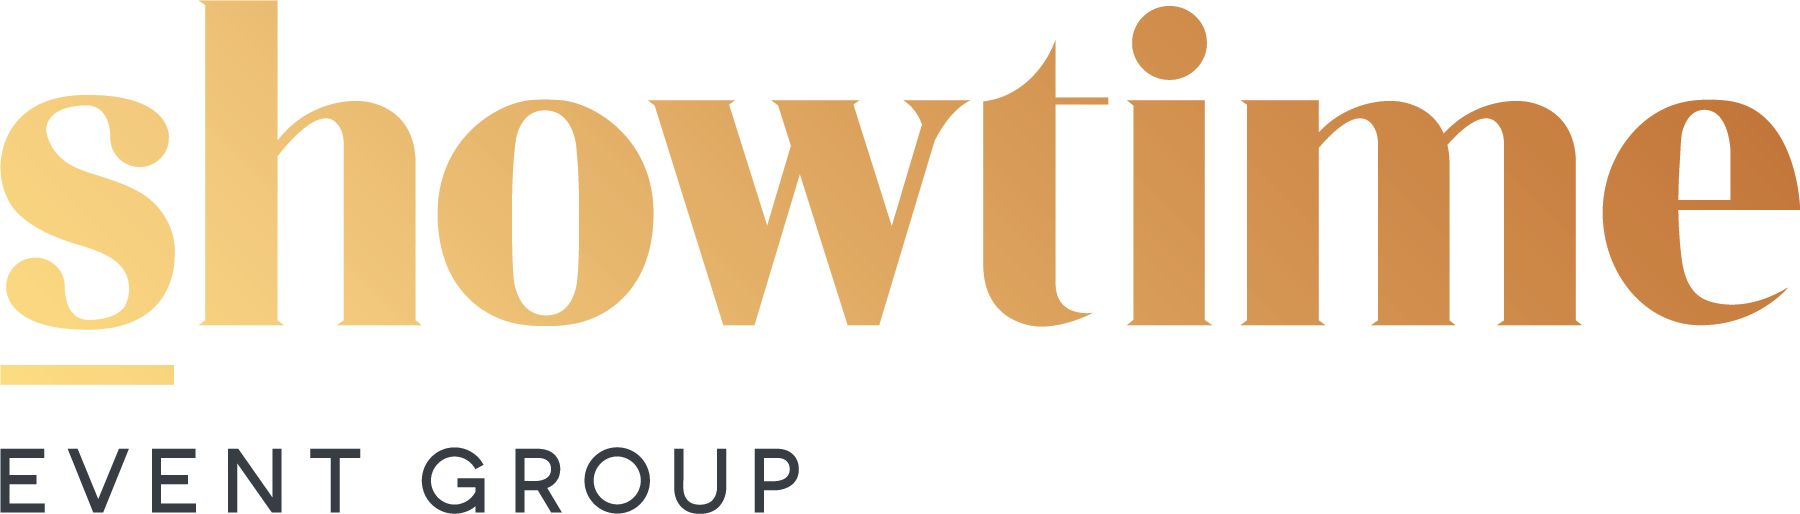 Showtime Event Group Logo